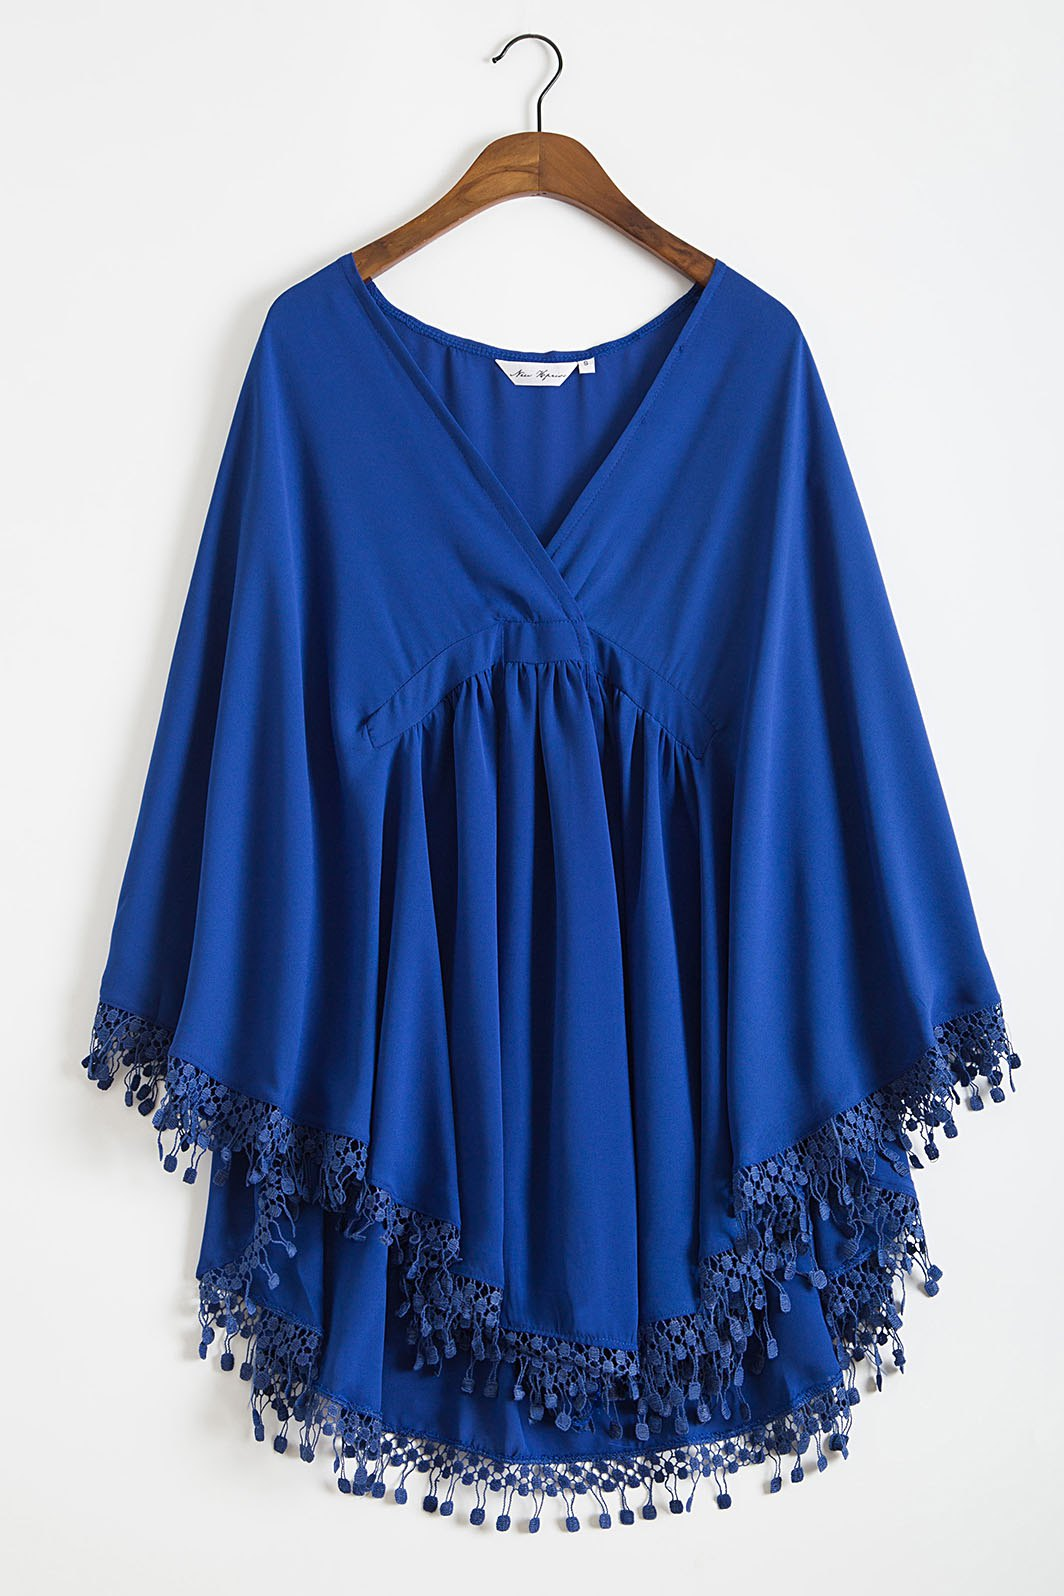 Plunging Neck Solid Color Lacework Spliced Cape Cover Up